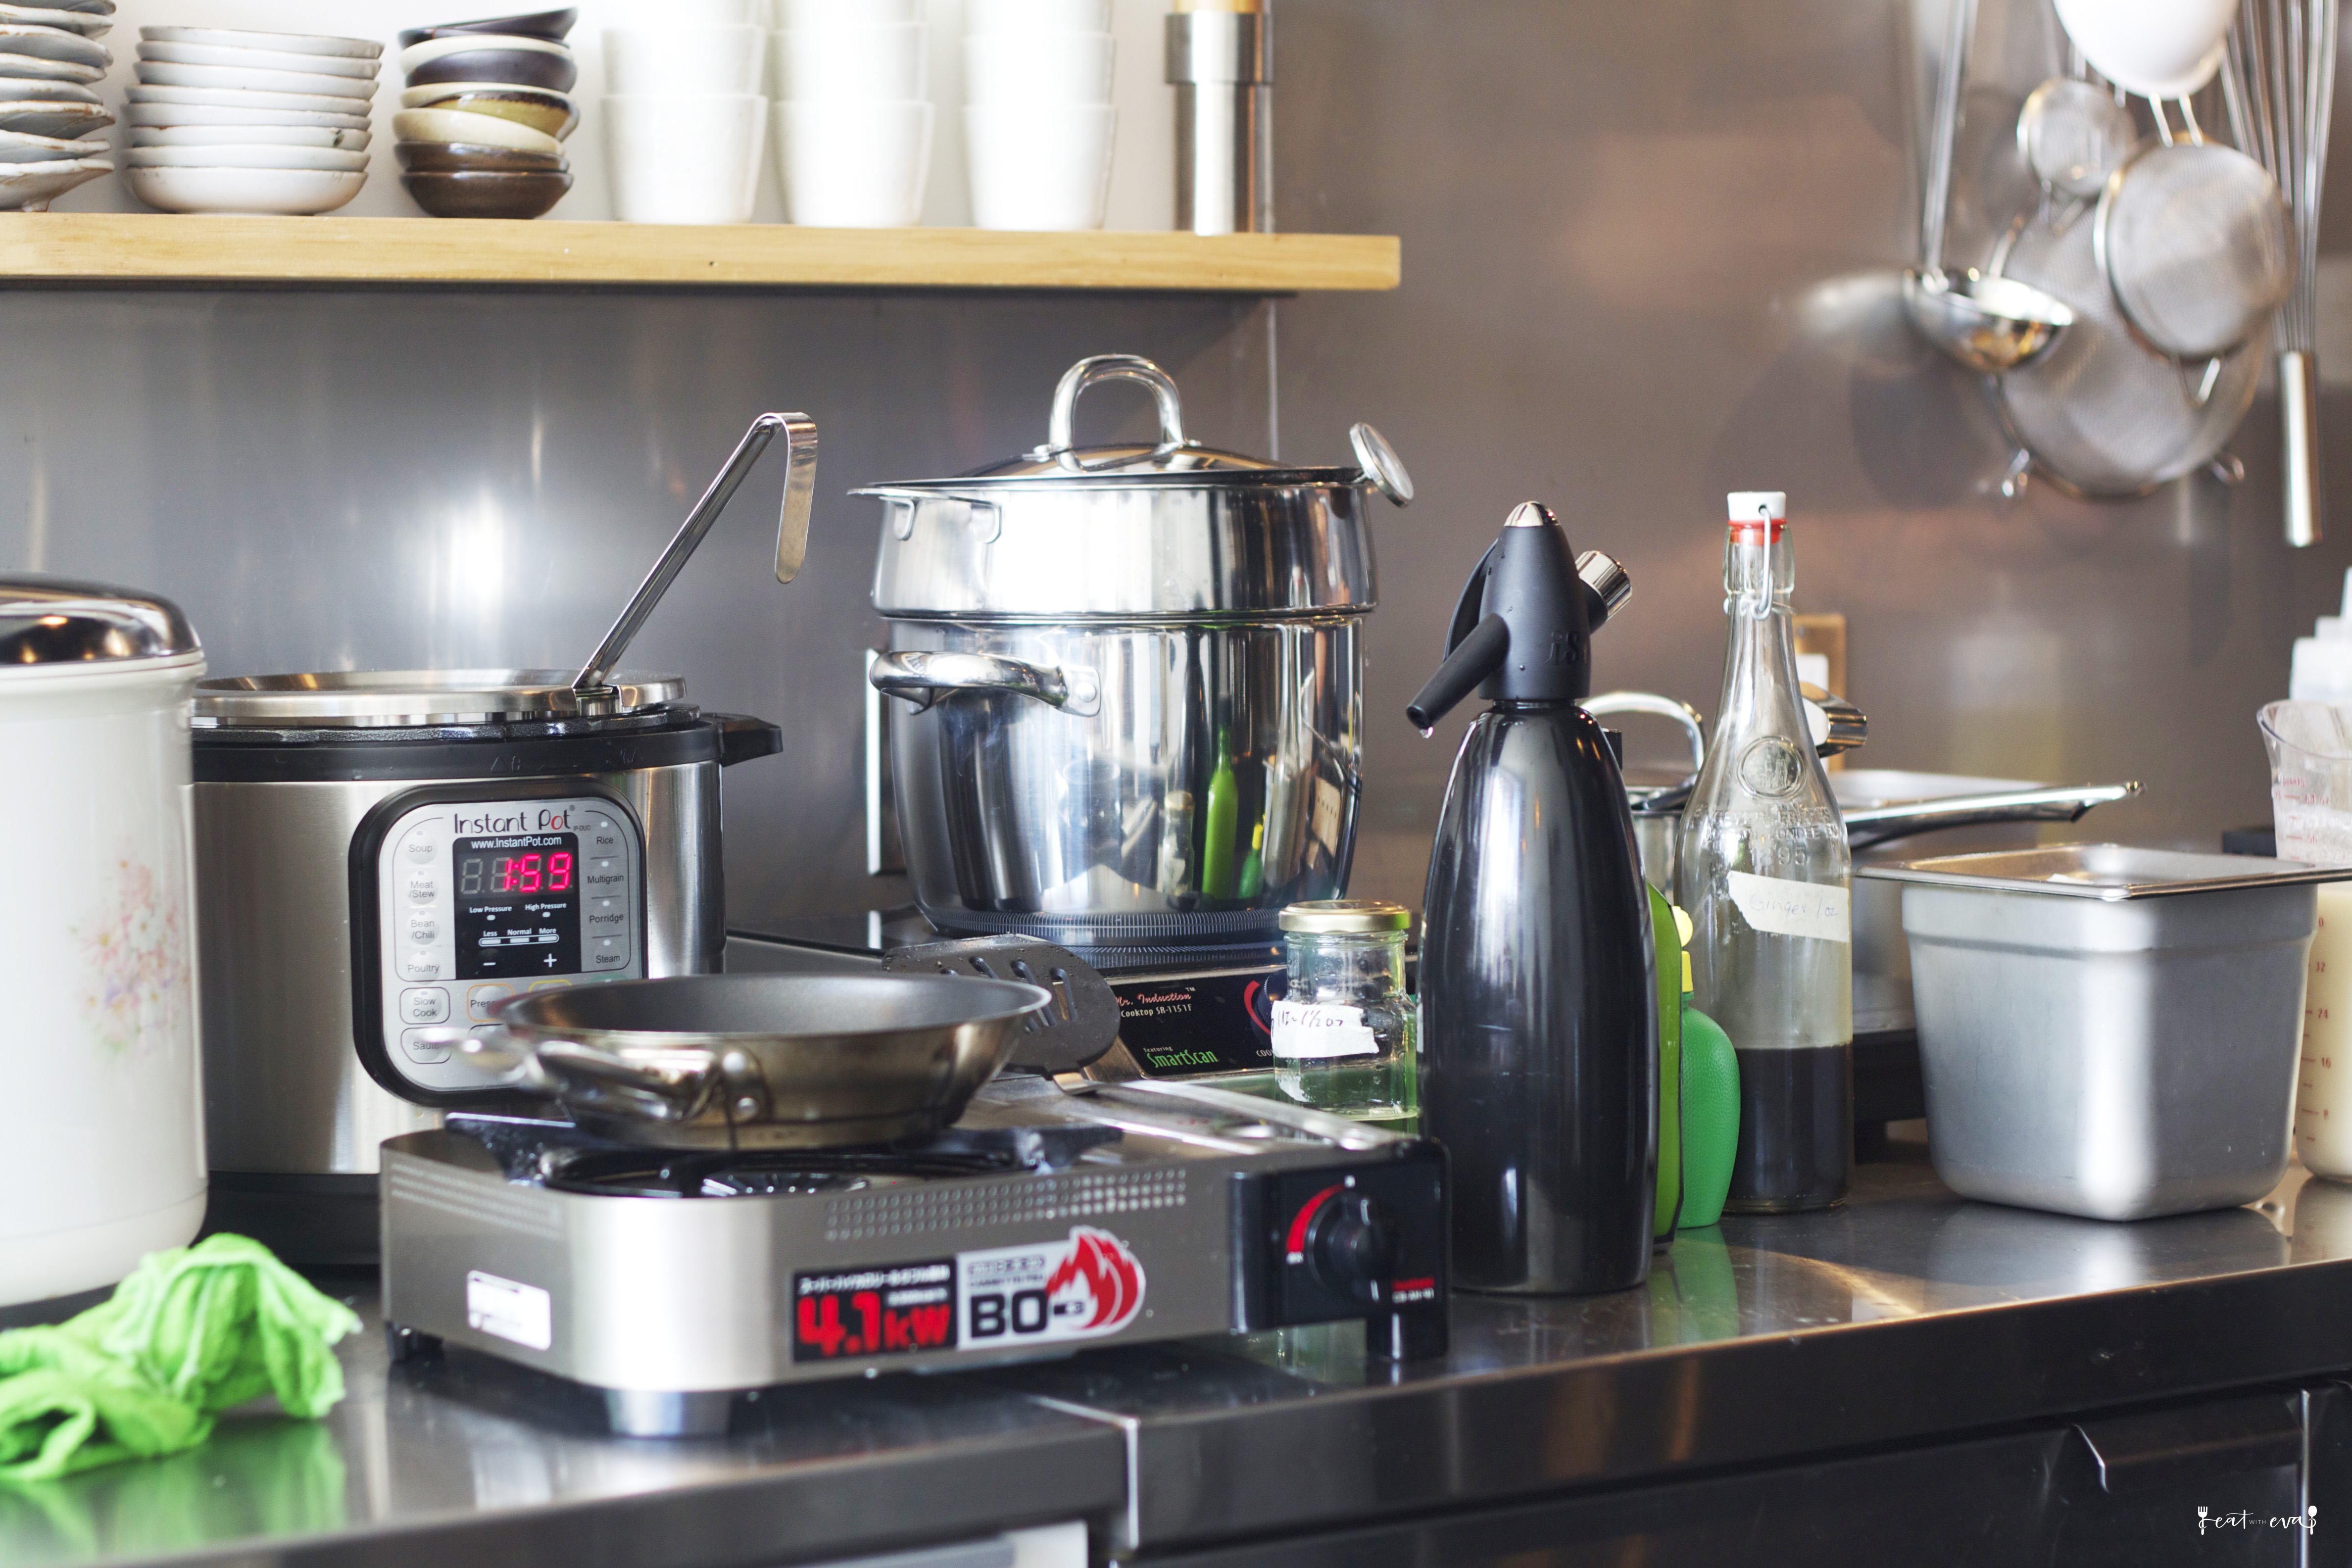 Uncategorized Kitchen Appliances Montreal mtl minimalist noren eat with eva i was kind of surprise to see those portable gas stoves but all the kitchen appliances are